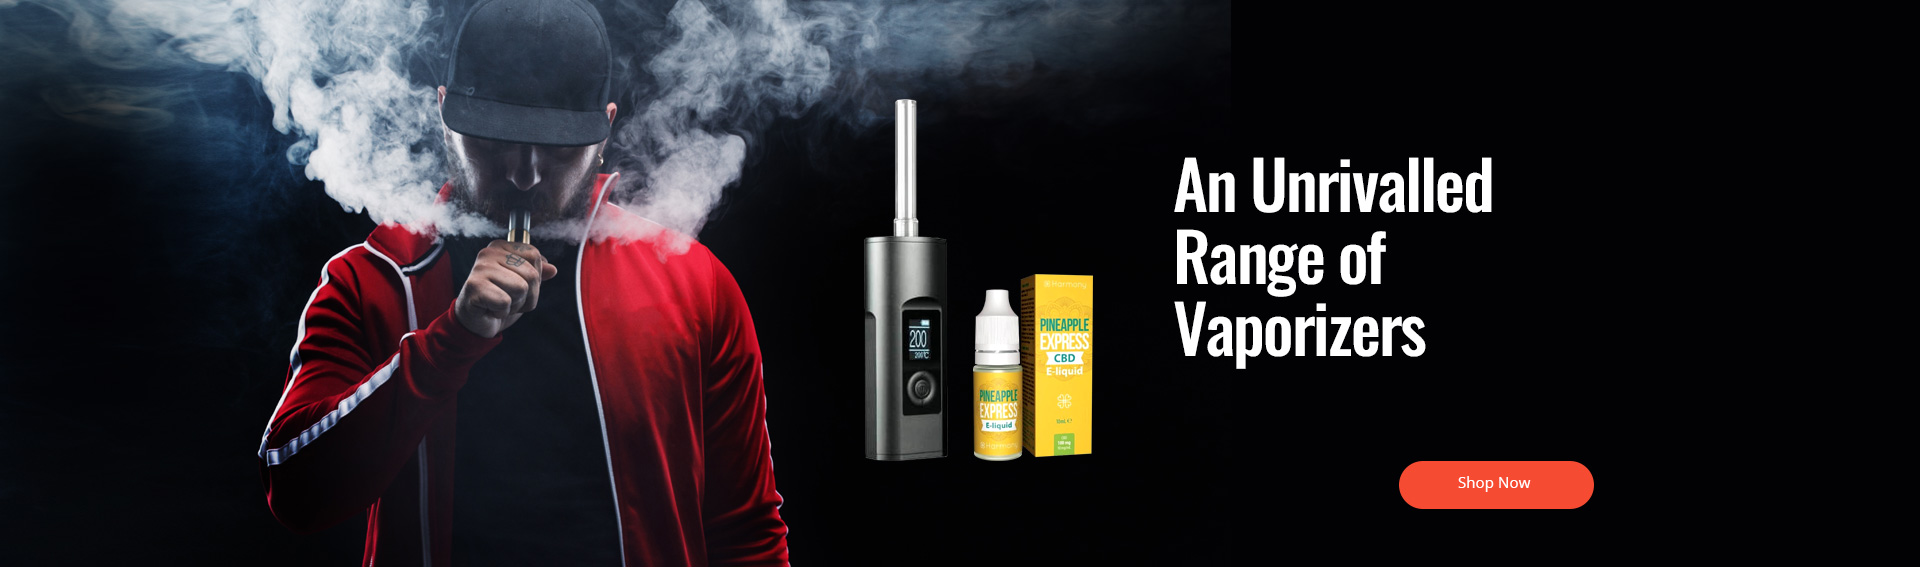 Homepage - An unrivaled range of vaporixzers